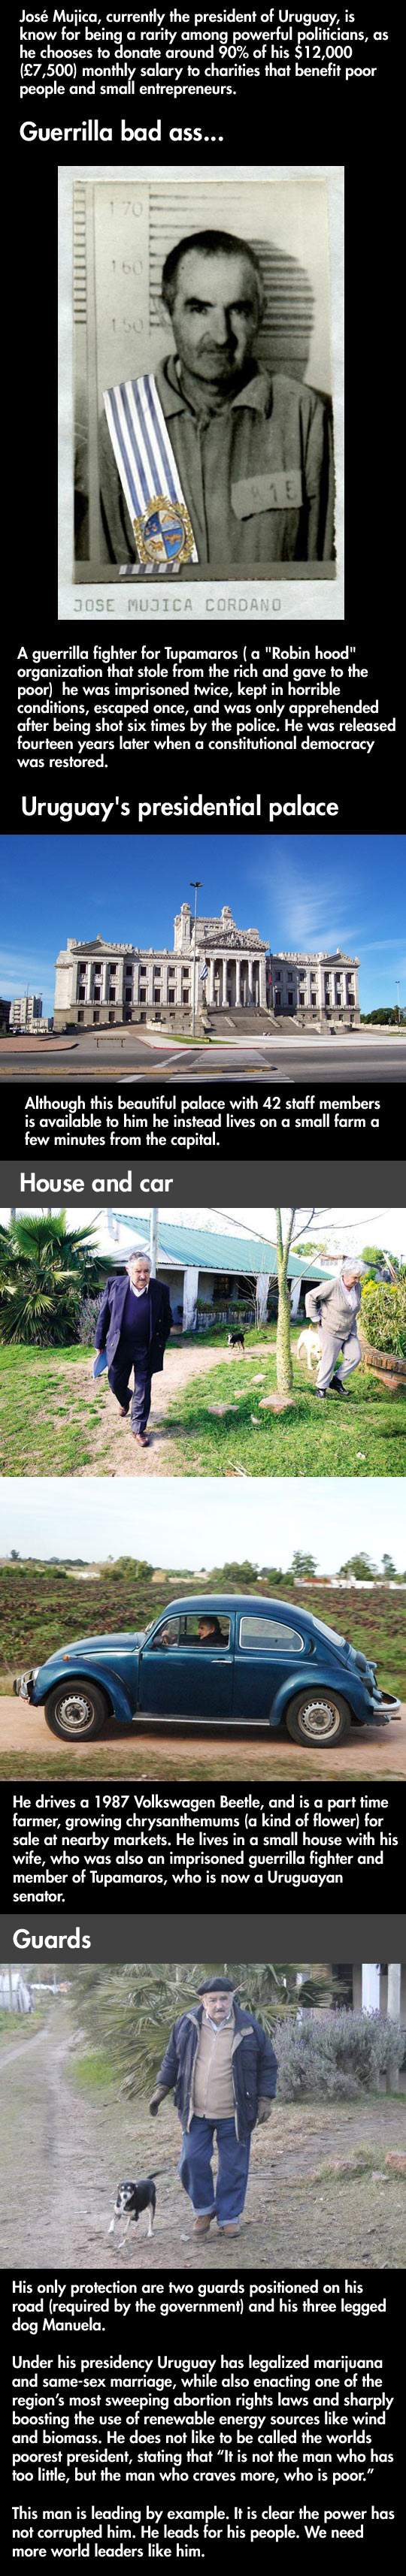 Jose Mujica, More than a President